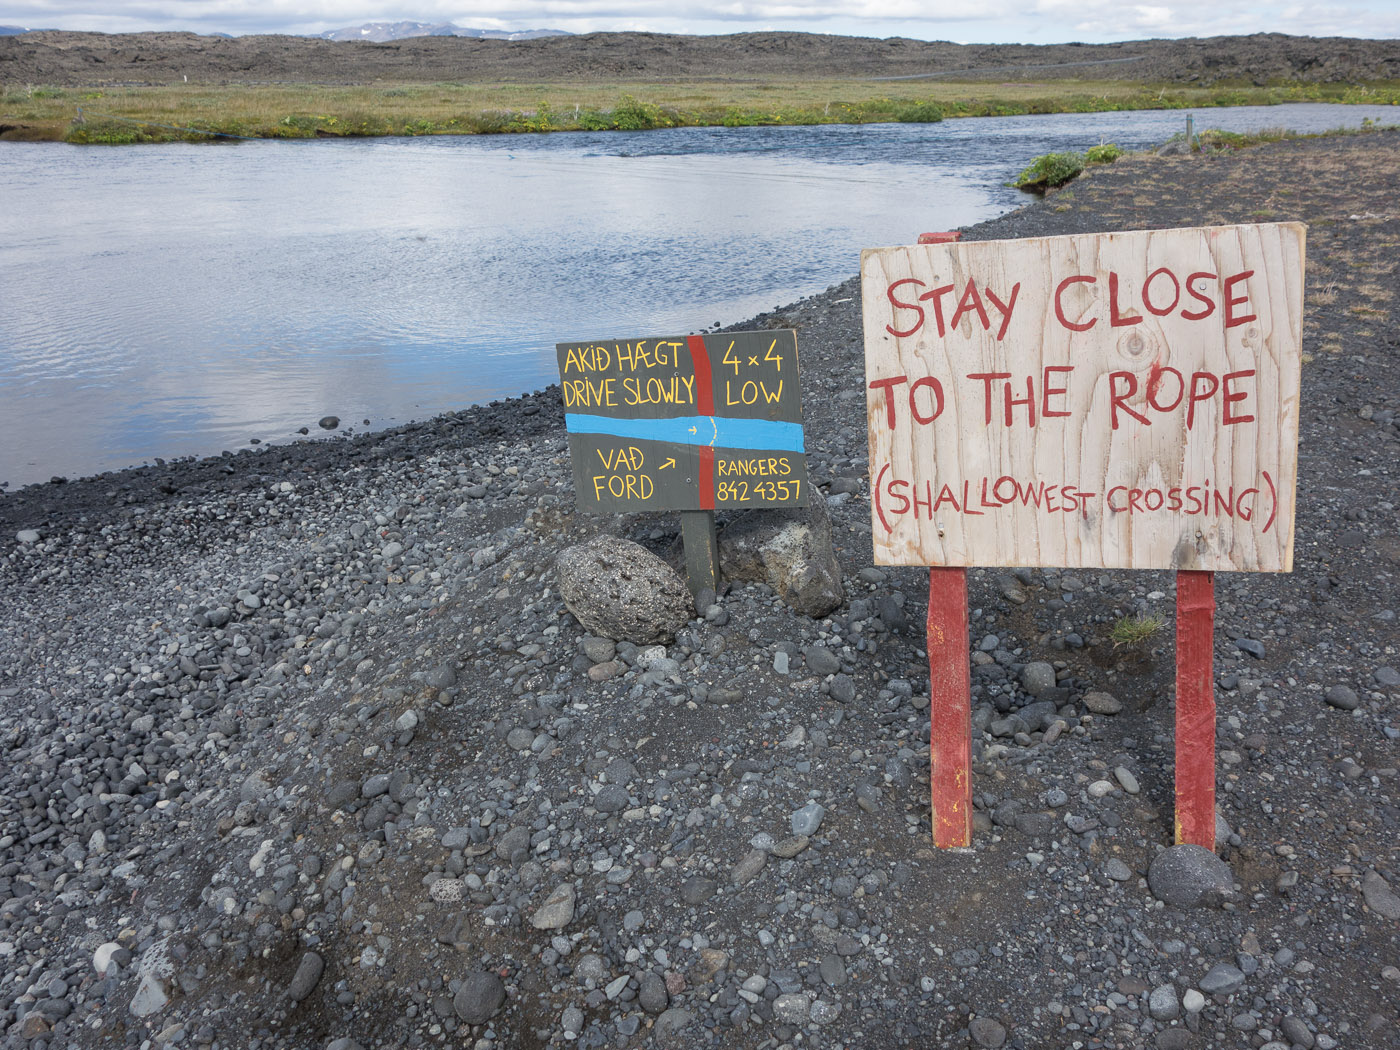 Northern Iceland - On the way to Askja. On vacation. - Signs with infos how to cross a river ... (24 July 2014)